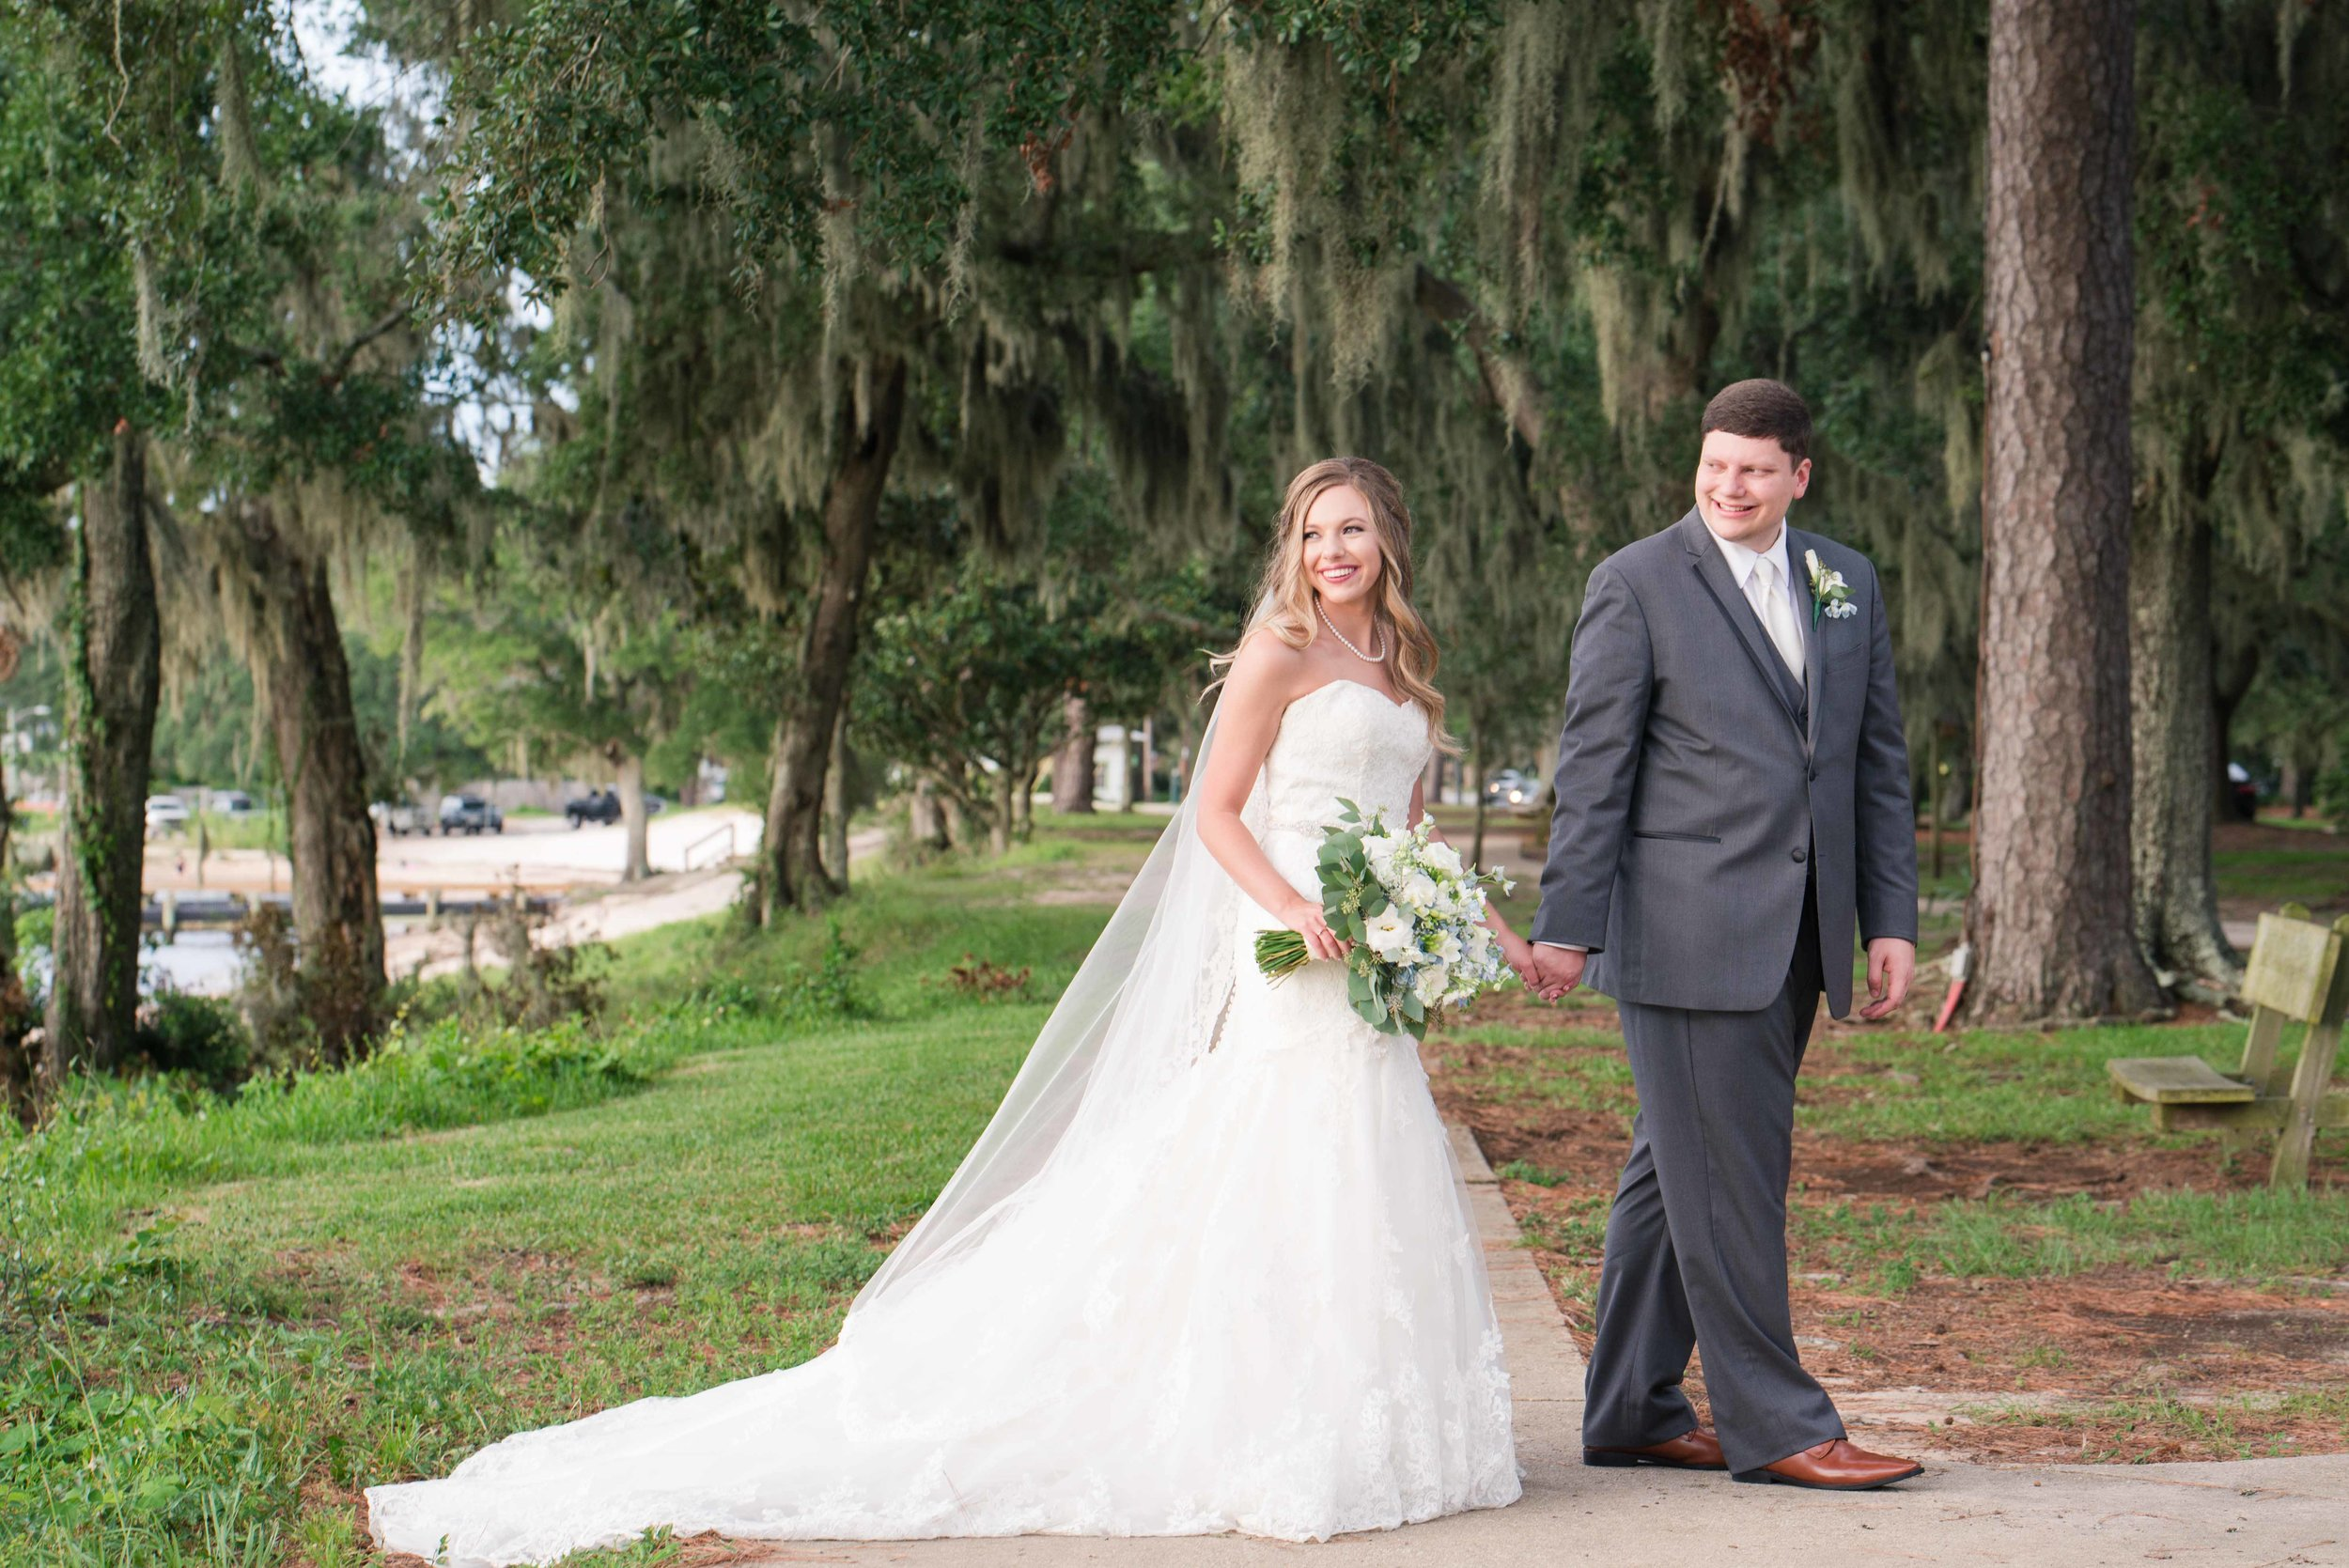 Tori and Trey Huggins Fairhope Alabama Wedding Deborah Michelle Photography